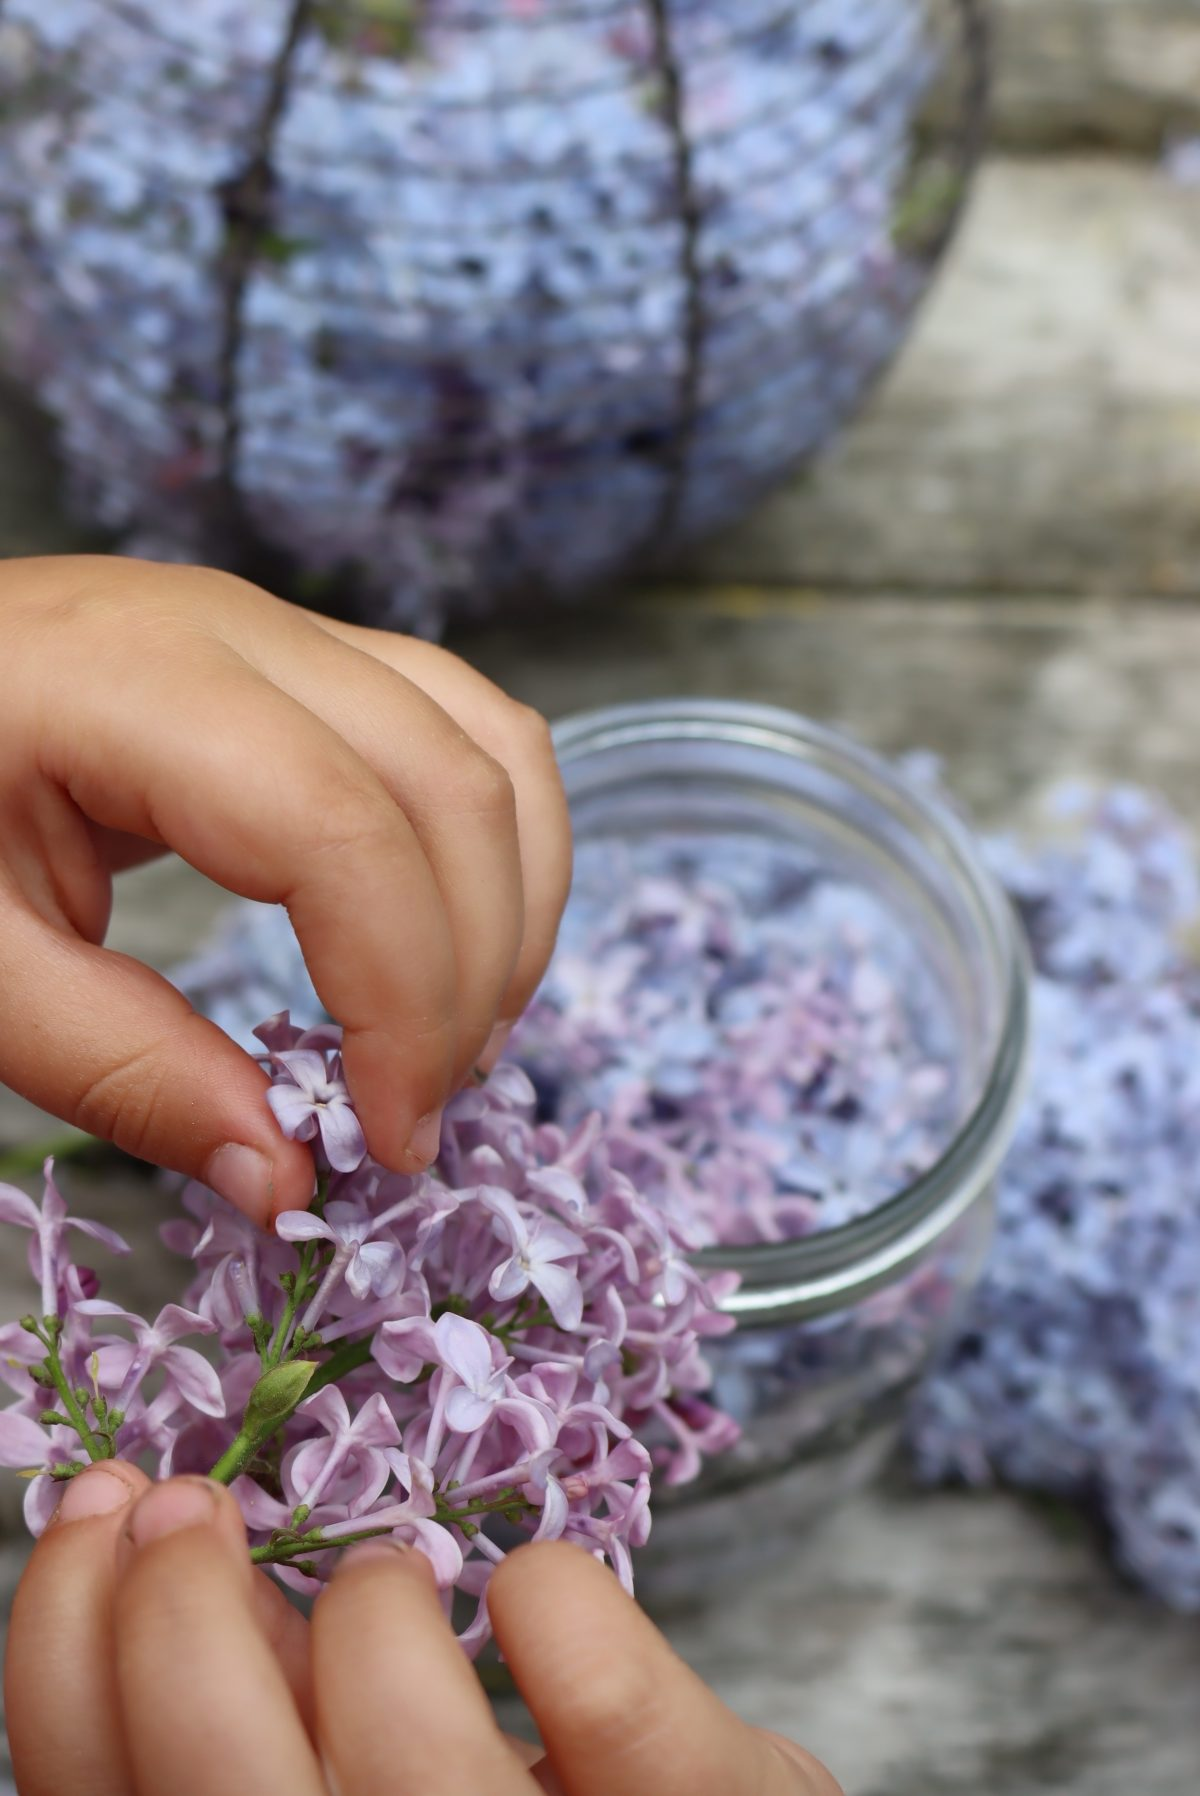 Separating Lilac Flowers